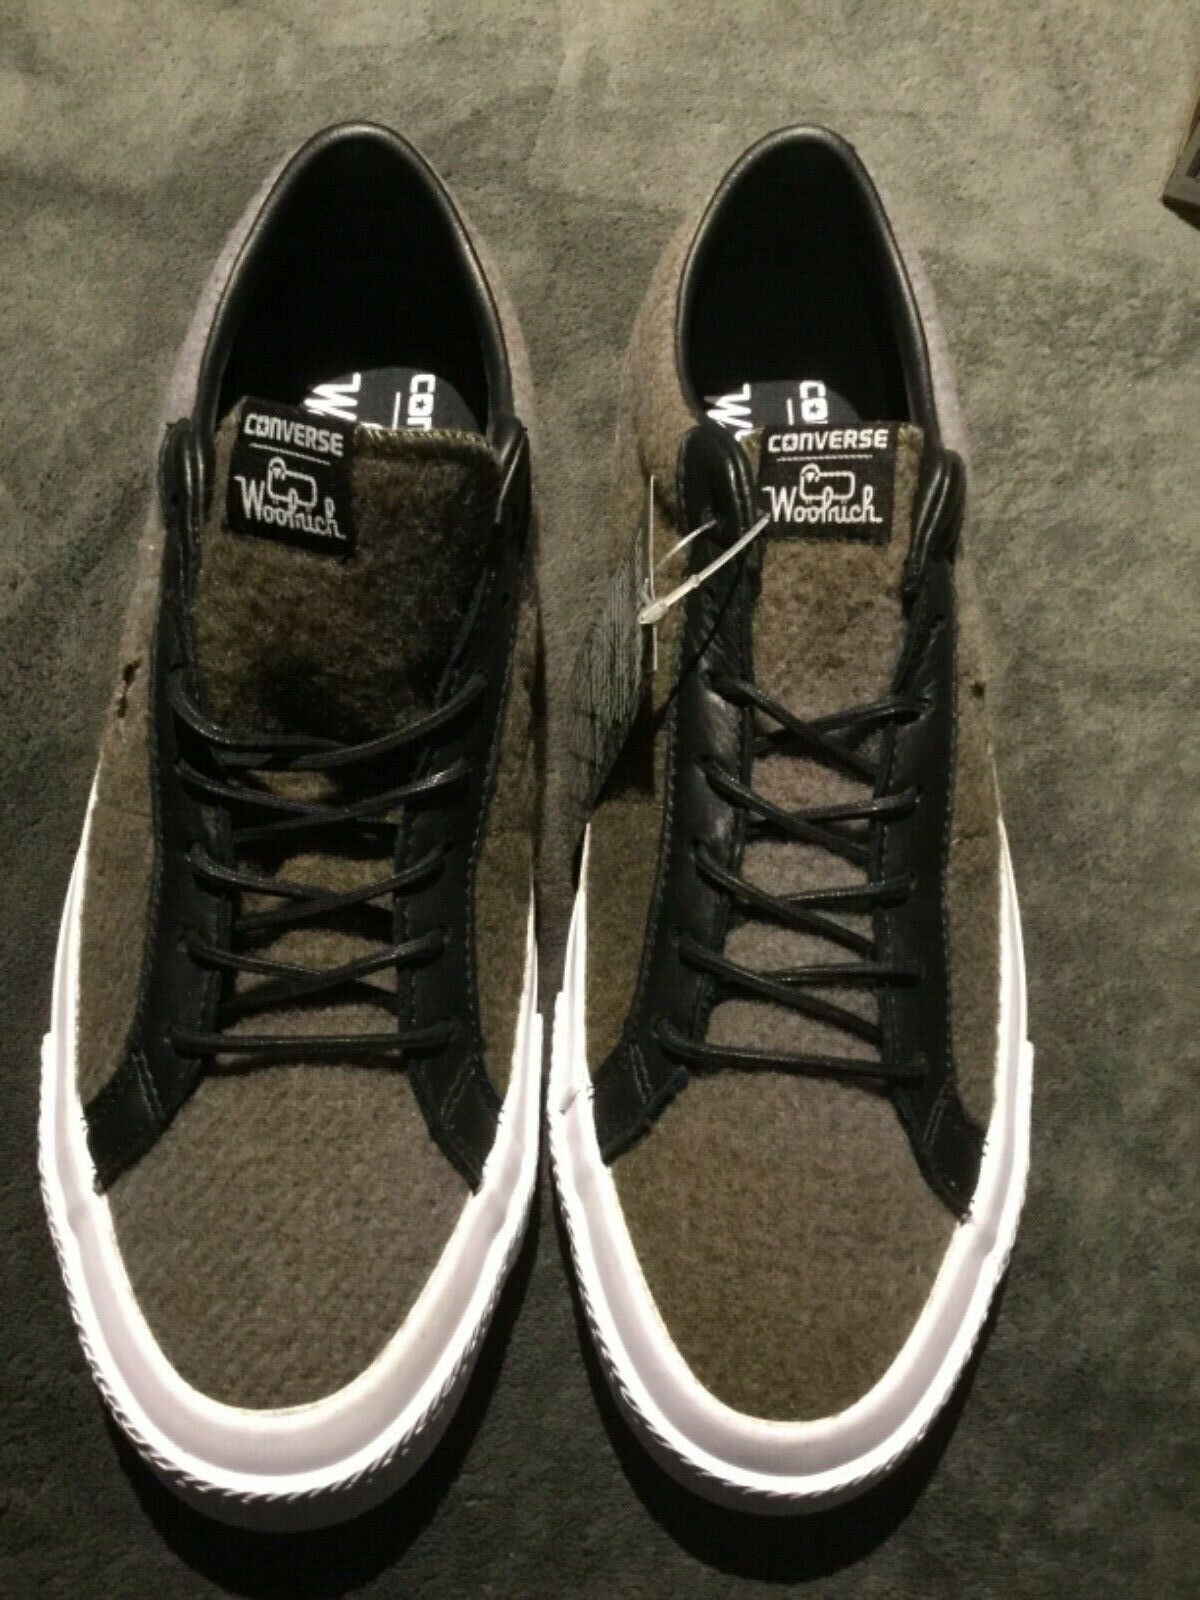 Converse one star woolrich ox jute herbal  black size m10.5 w12.5 NWT